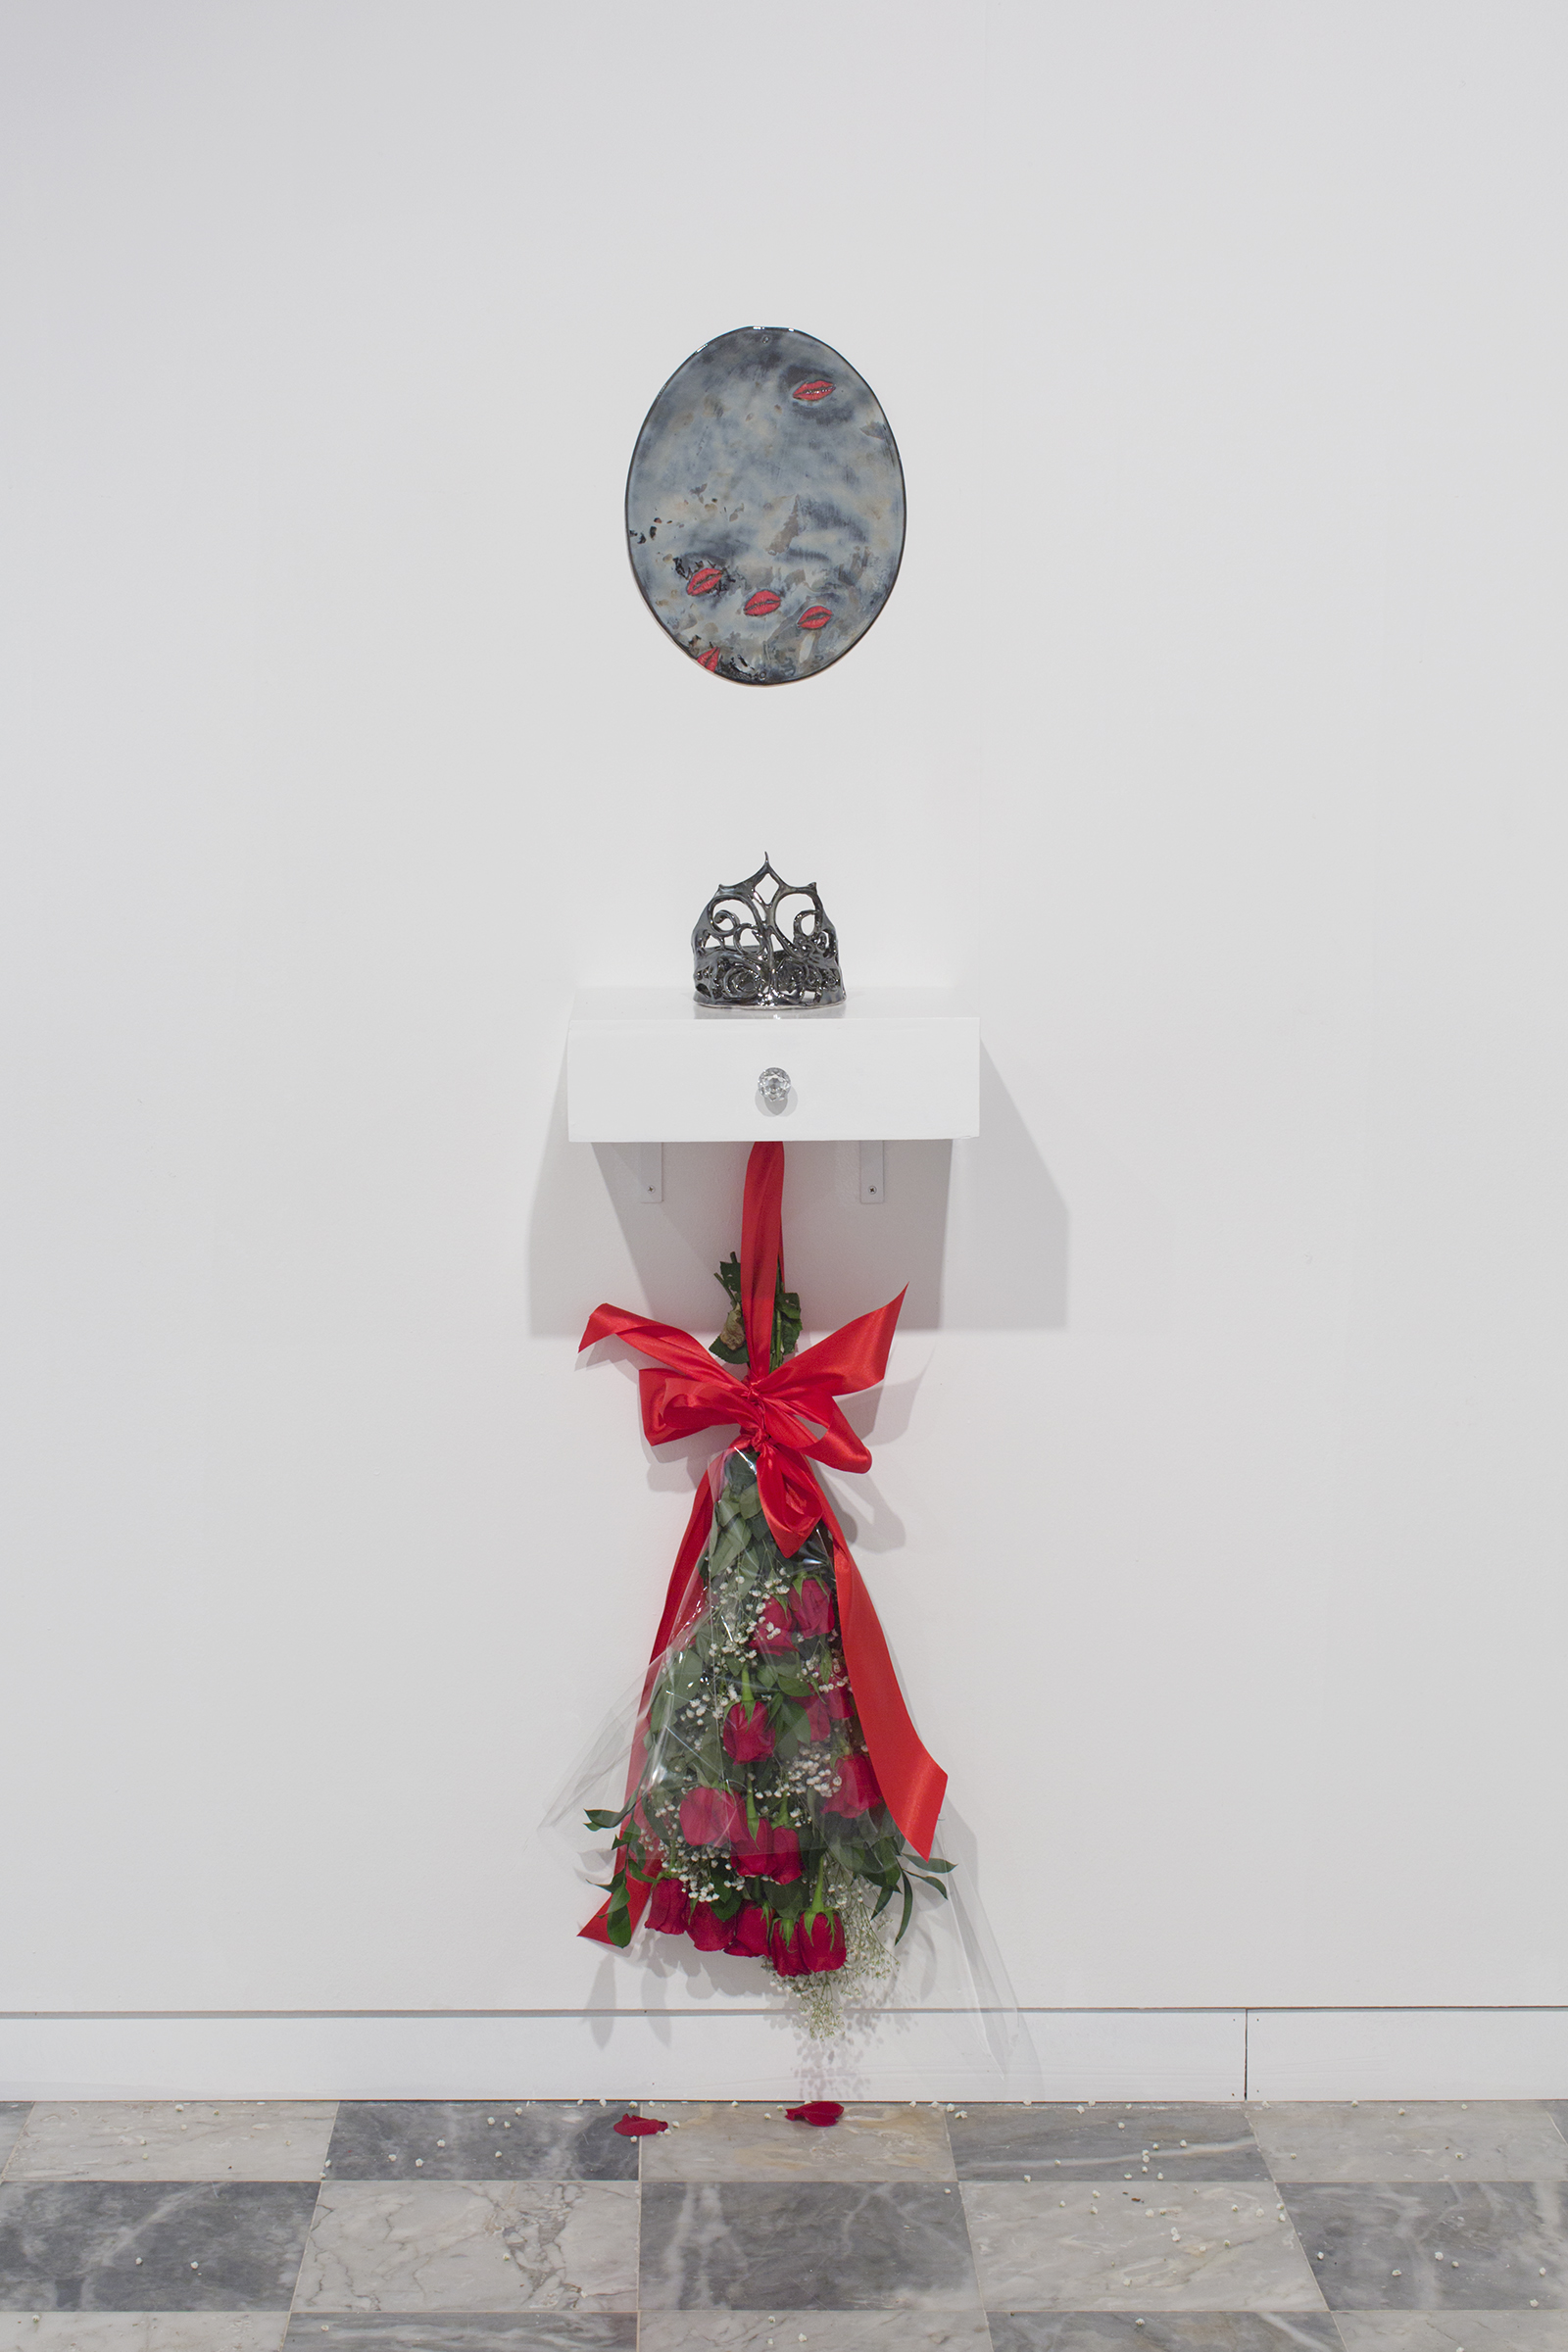 "Deborah Carthy-Deu, Miss Universe 1985, 2018  Porcelain mirror, porcelain crown, vanity, red roses, silk, cellophane, baby's breath, hardware Porcelain mirror 14 x 8"" (35.6 x 20.3 cm), vanity shelf 12 x 15 x 4.5"" (30.5 x 38 x 11.4 cm)   Overall dimensions variable"